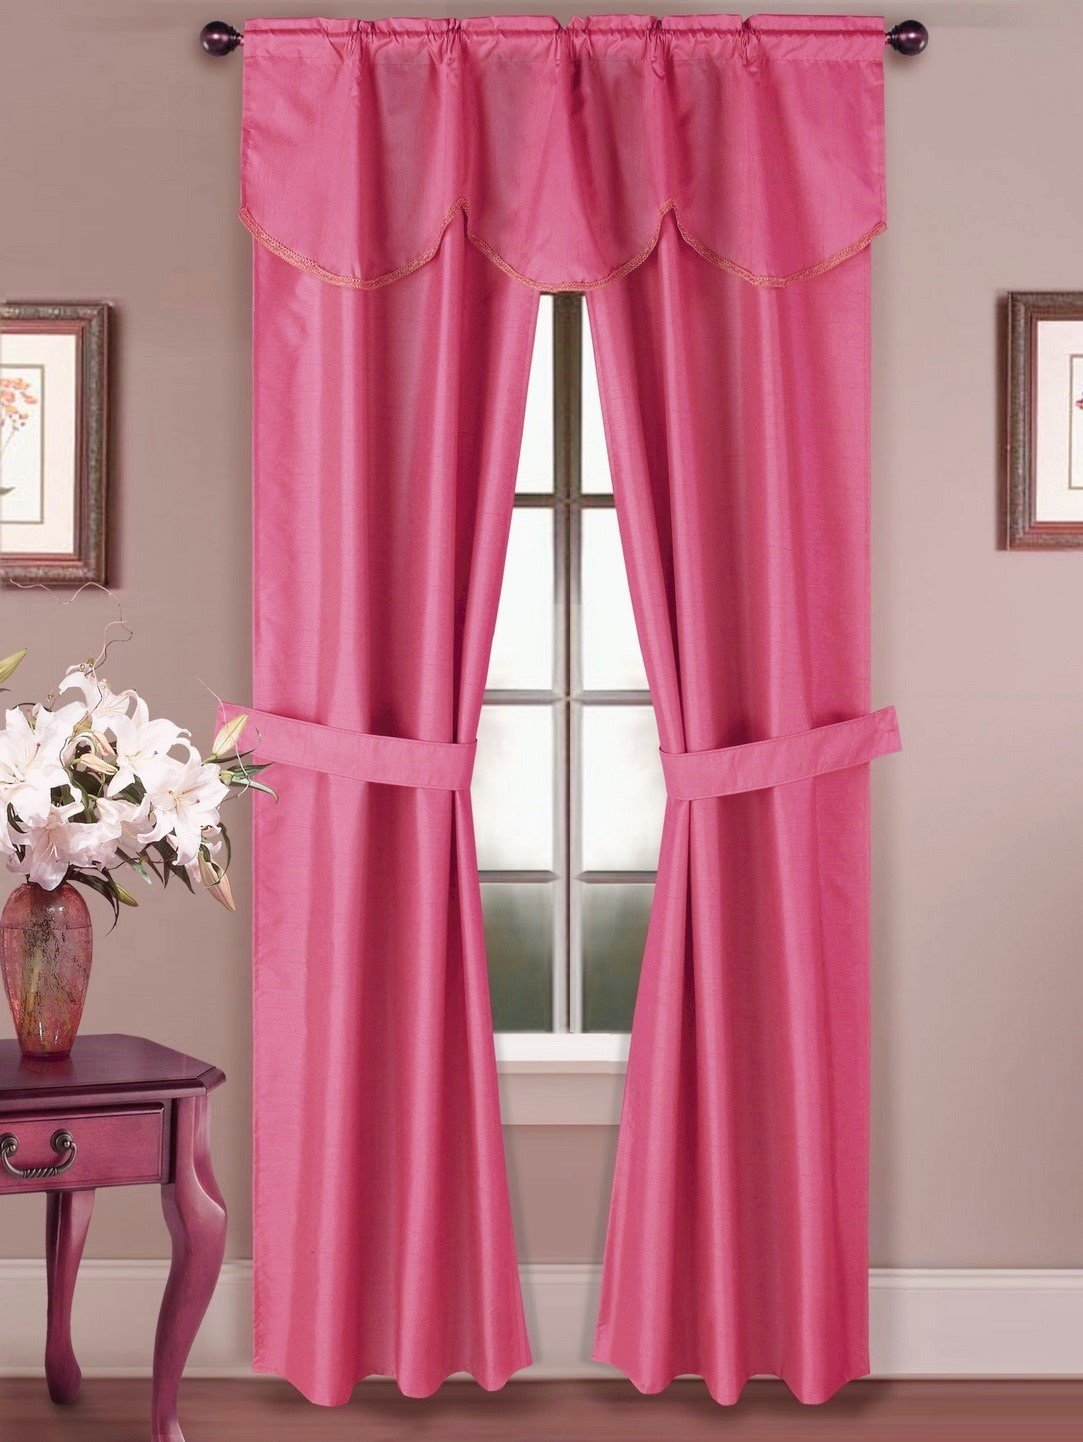 Shower Curtains With Valance And Tiebacks Shower Curtain